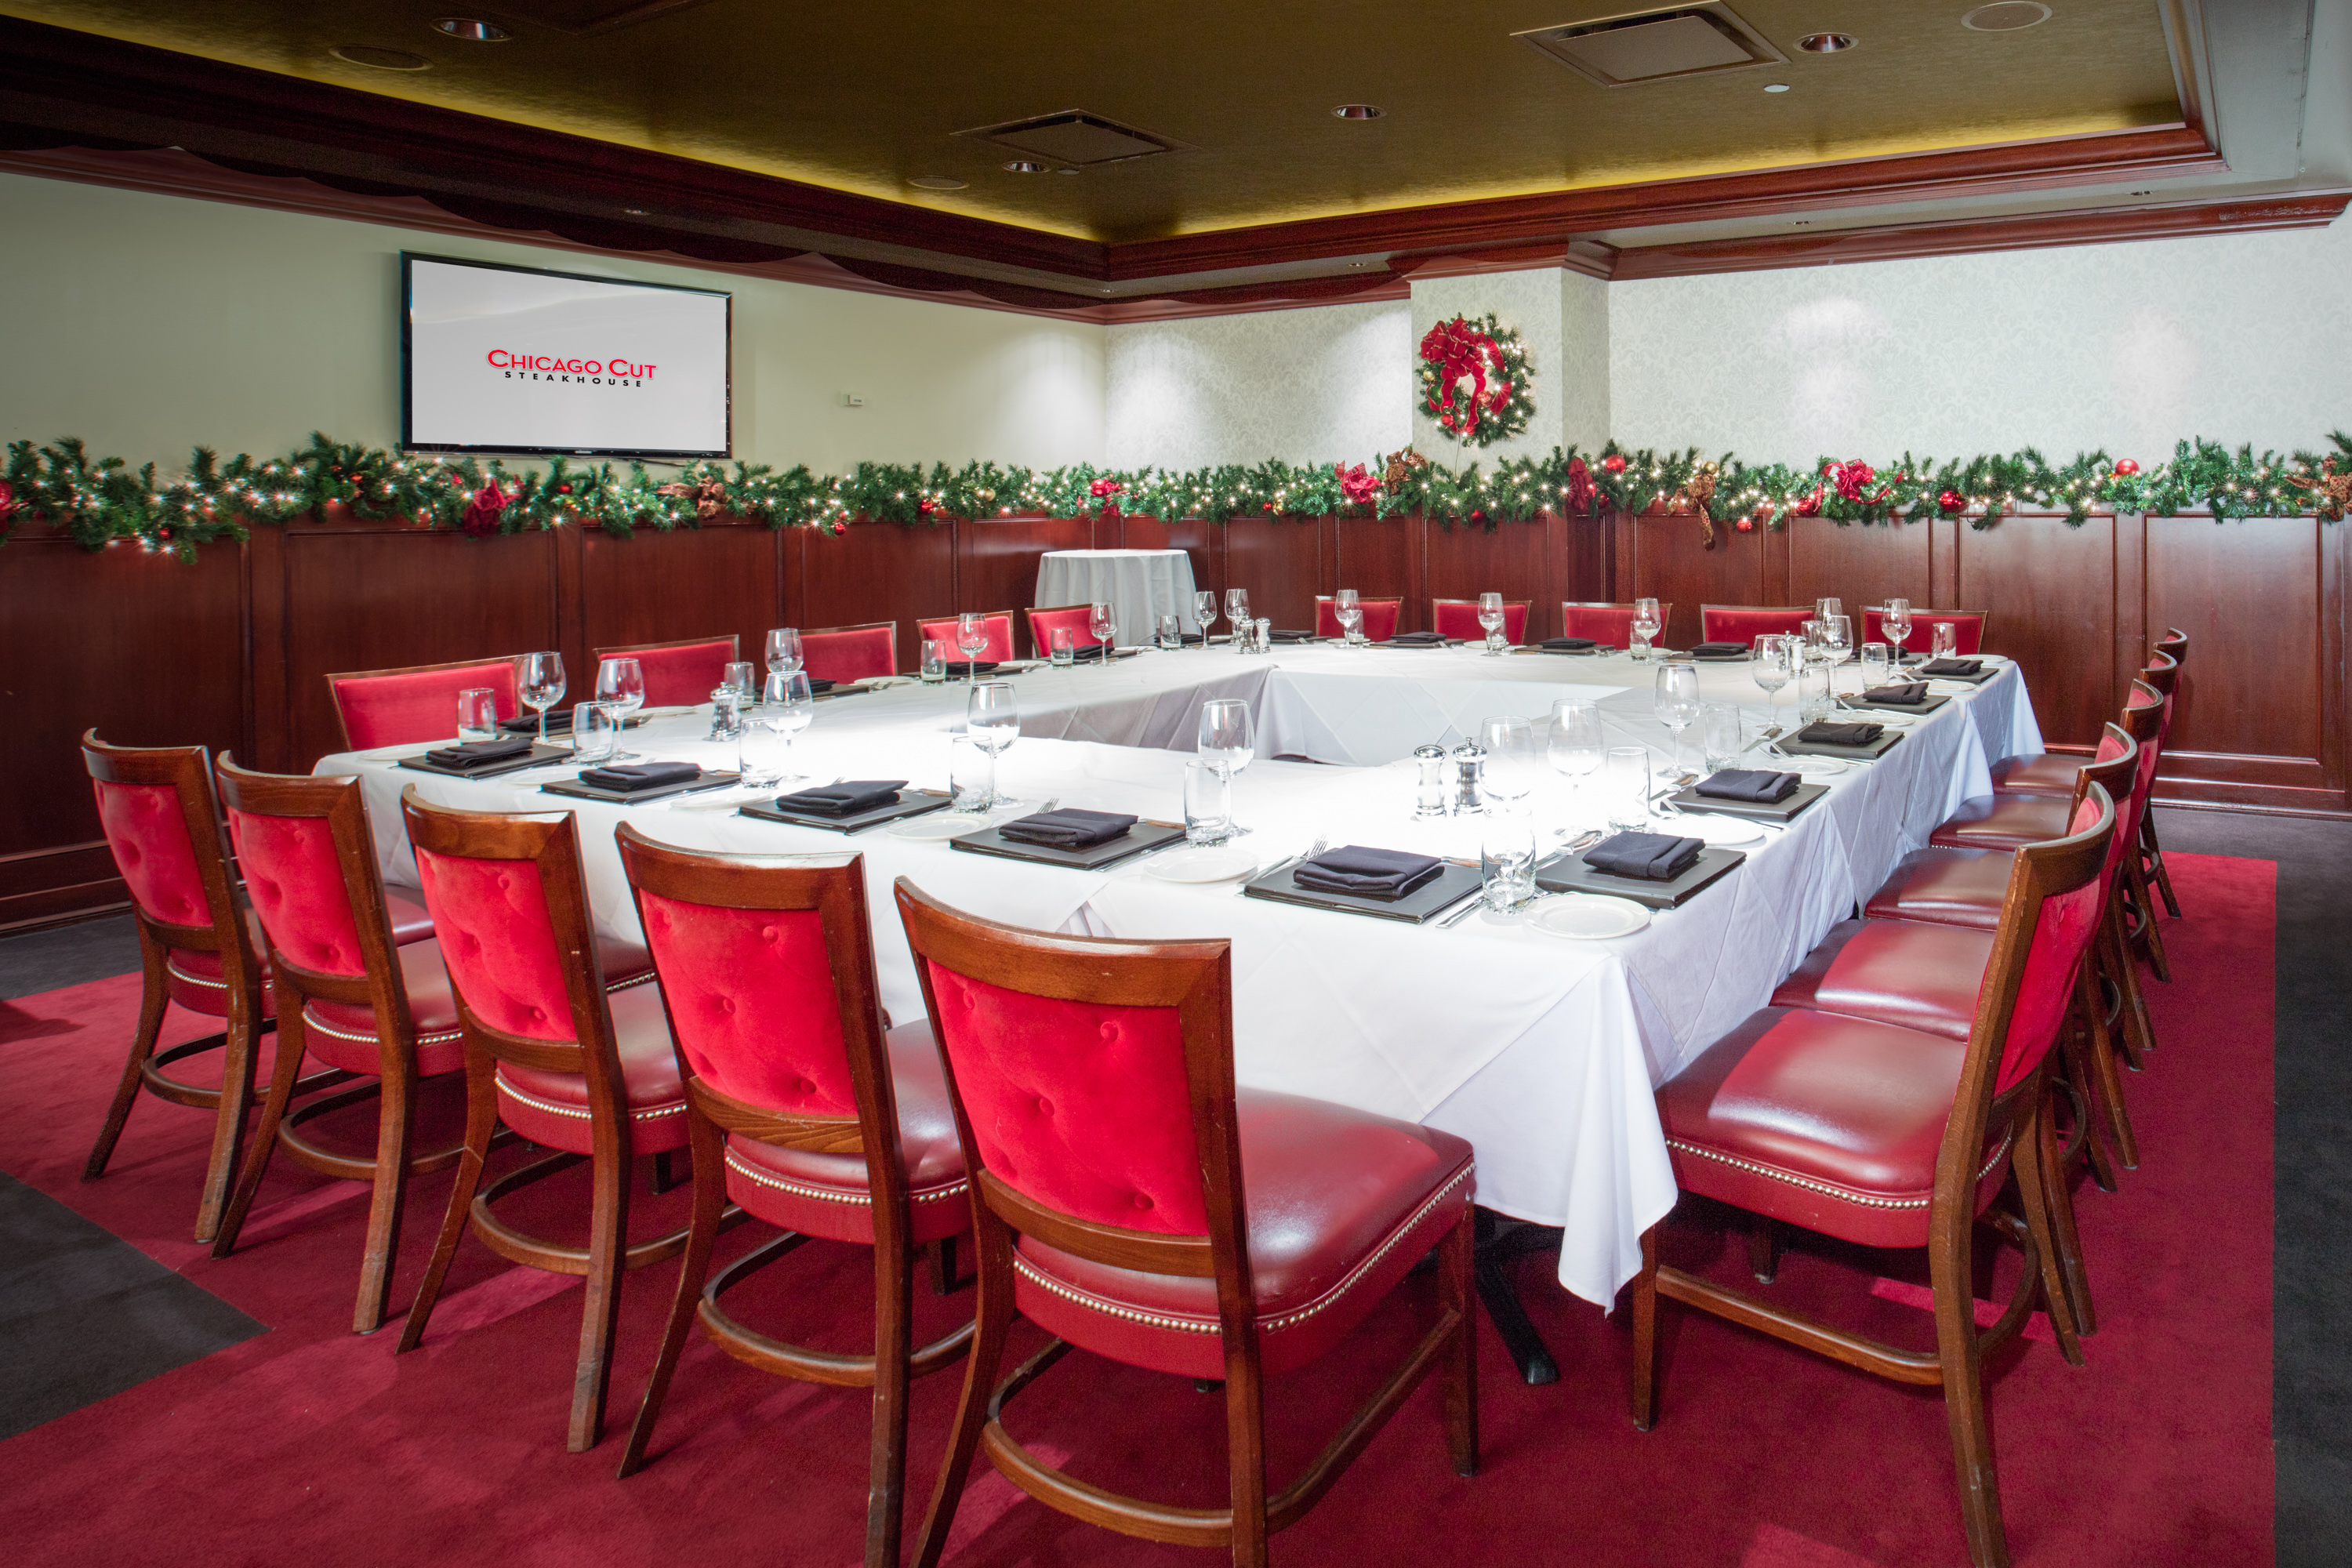 100 private dining rooms in chicago fig and olive private dining u0026 events chicago - Chicago private dining rooms ...